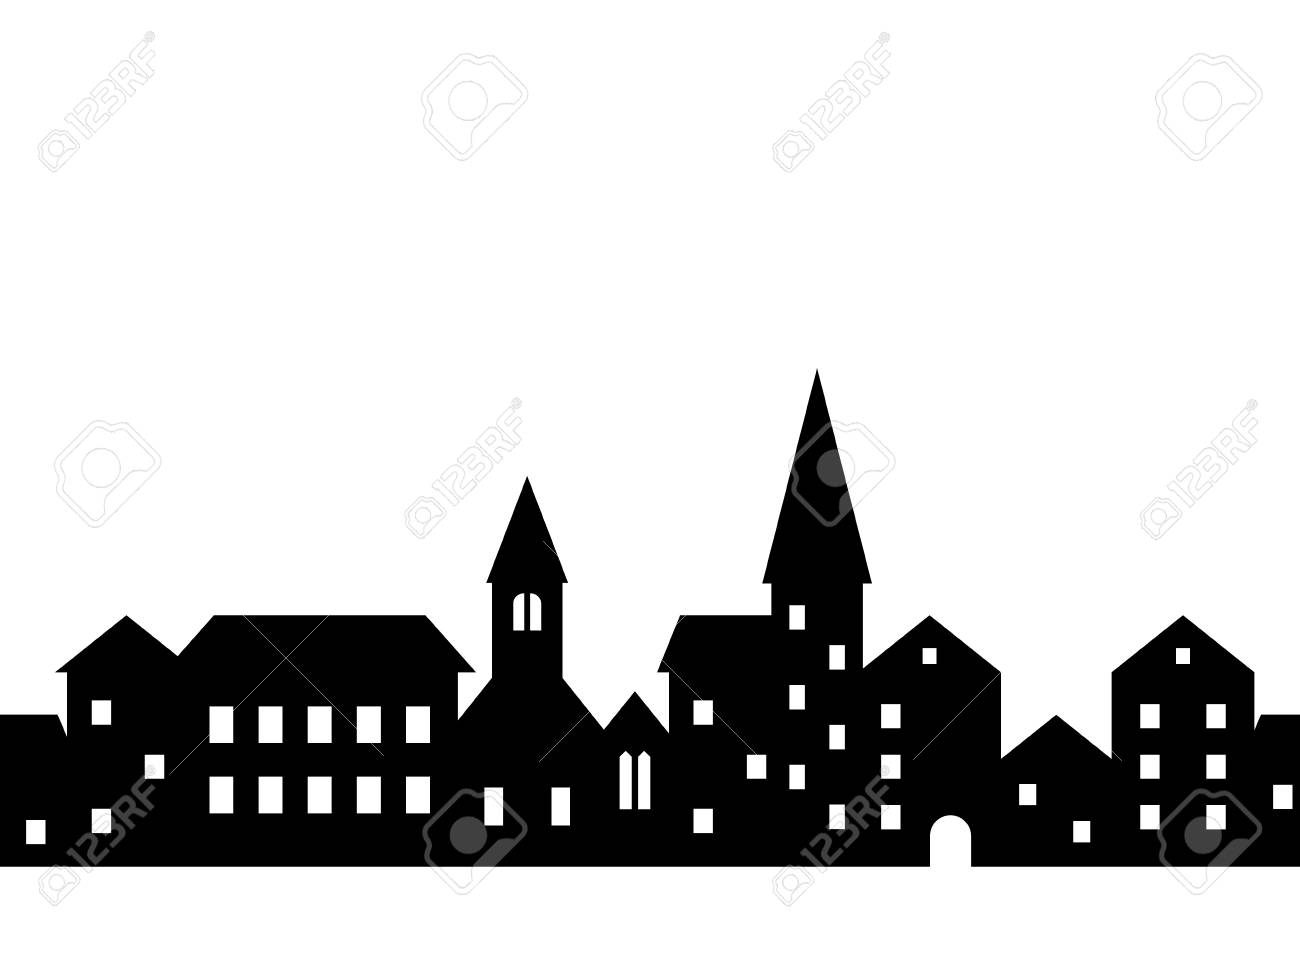 Black and white houses and buildings small town street seamless border, vector - 117889391